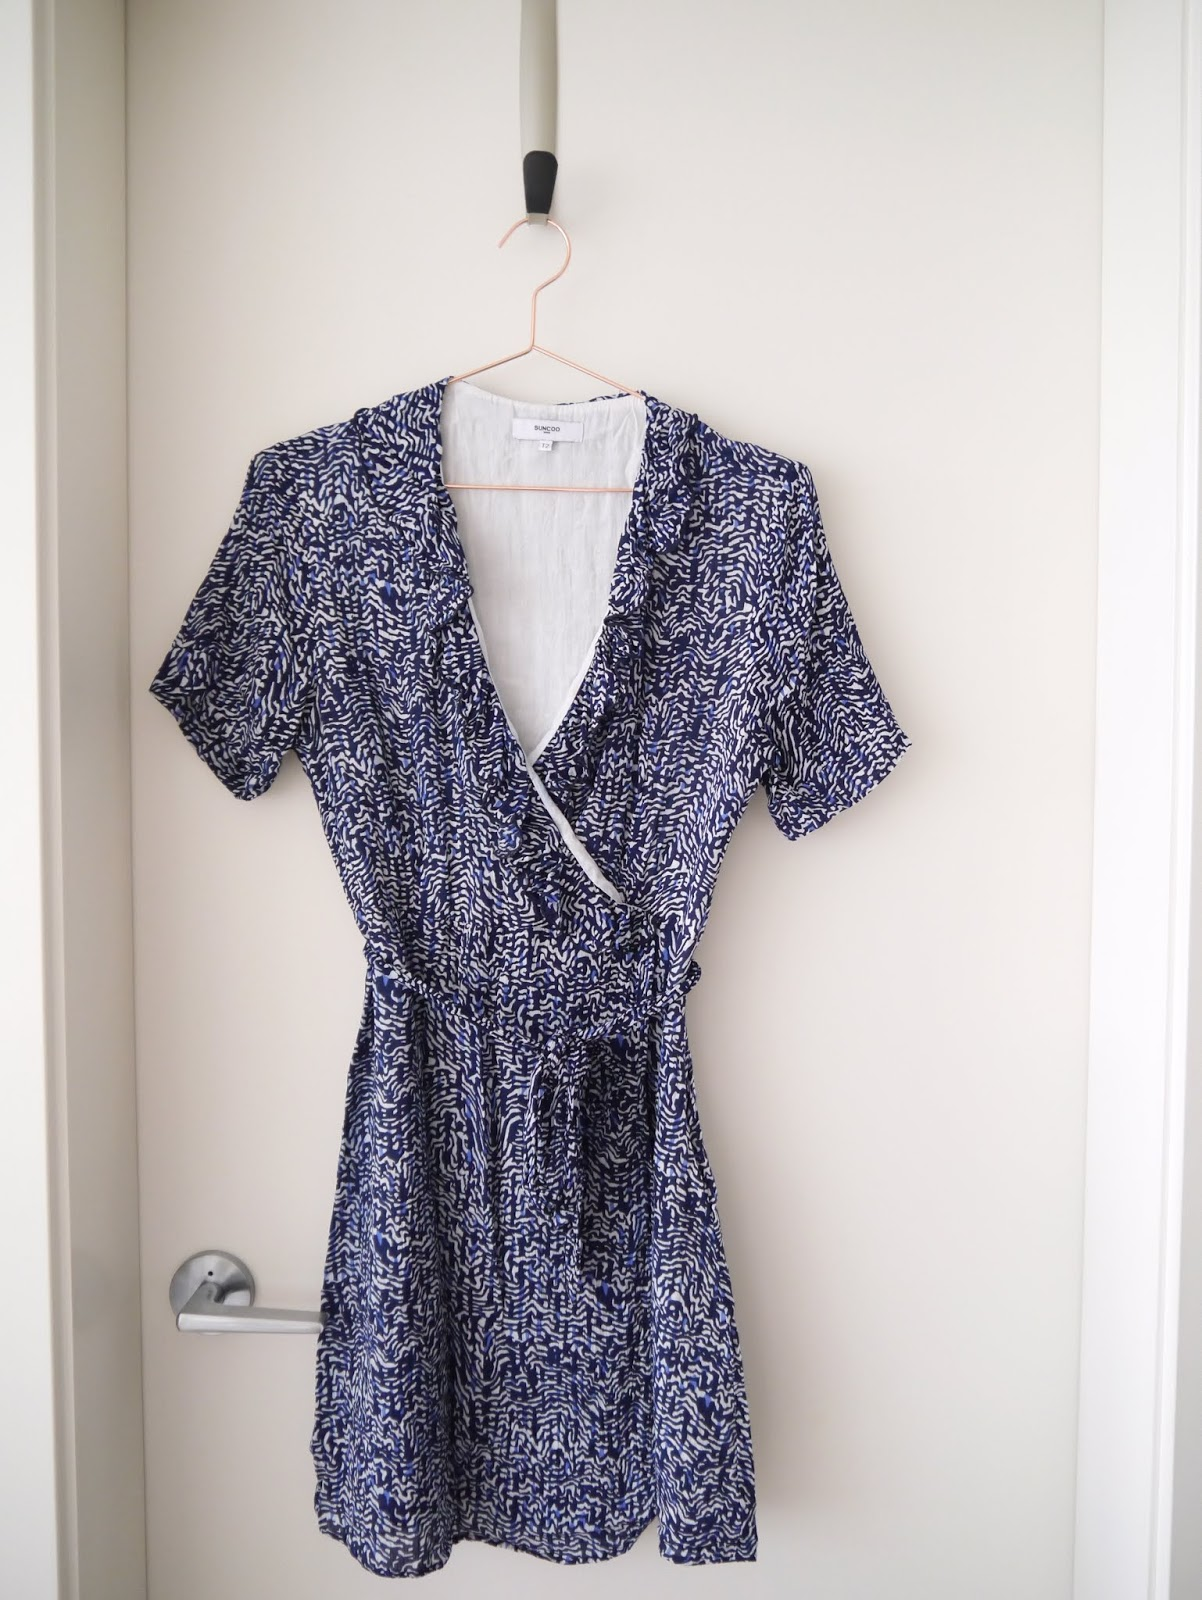 Suncoo Paris Dress